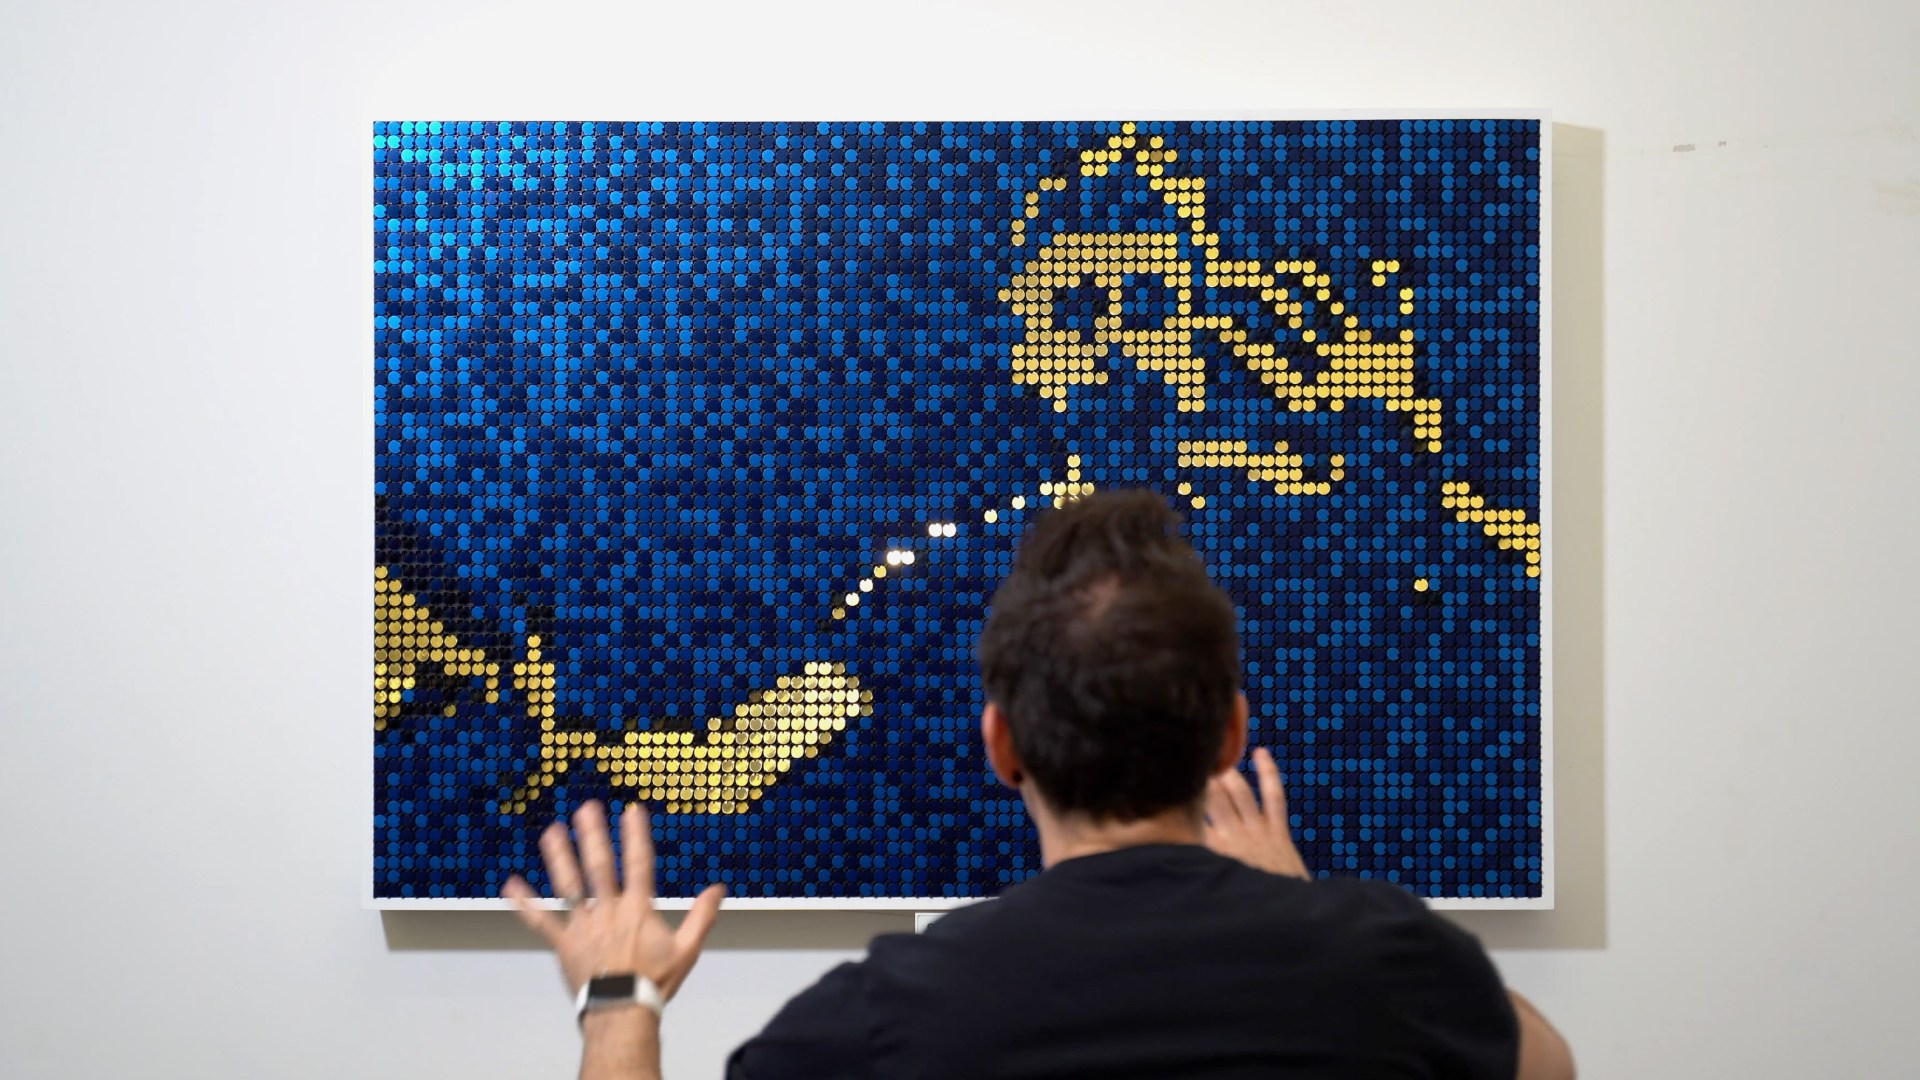 Person interacting with blue and gold Flip-Discs artwork called Seismic Echo. Created by BREAKFAST.